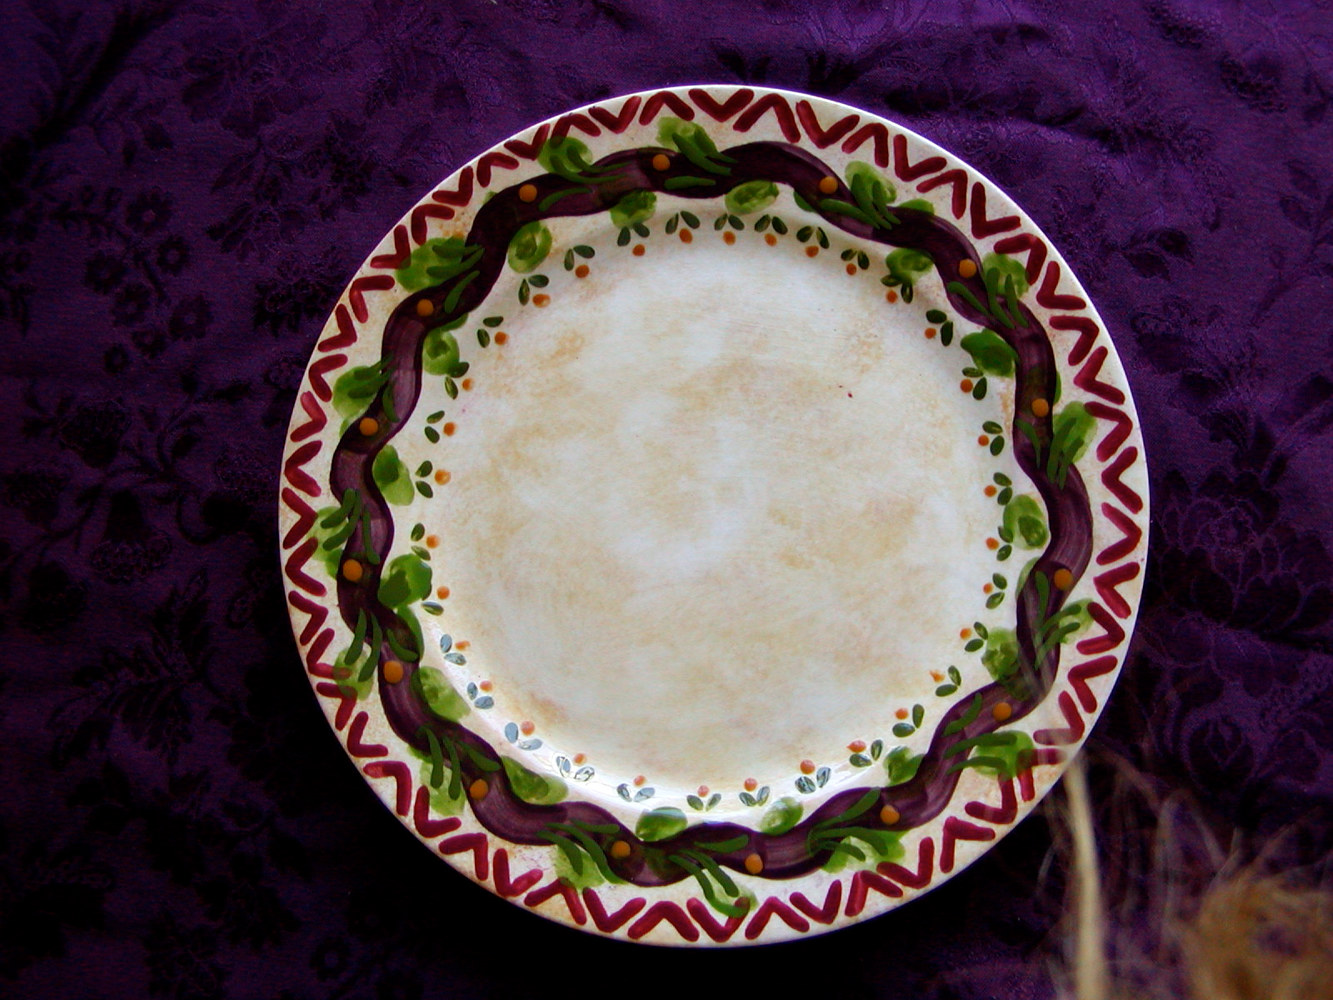 Painting Italianate Eclectic Glazeworks: Dinner Plate Design 9 by Victoria Avila